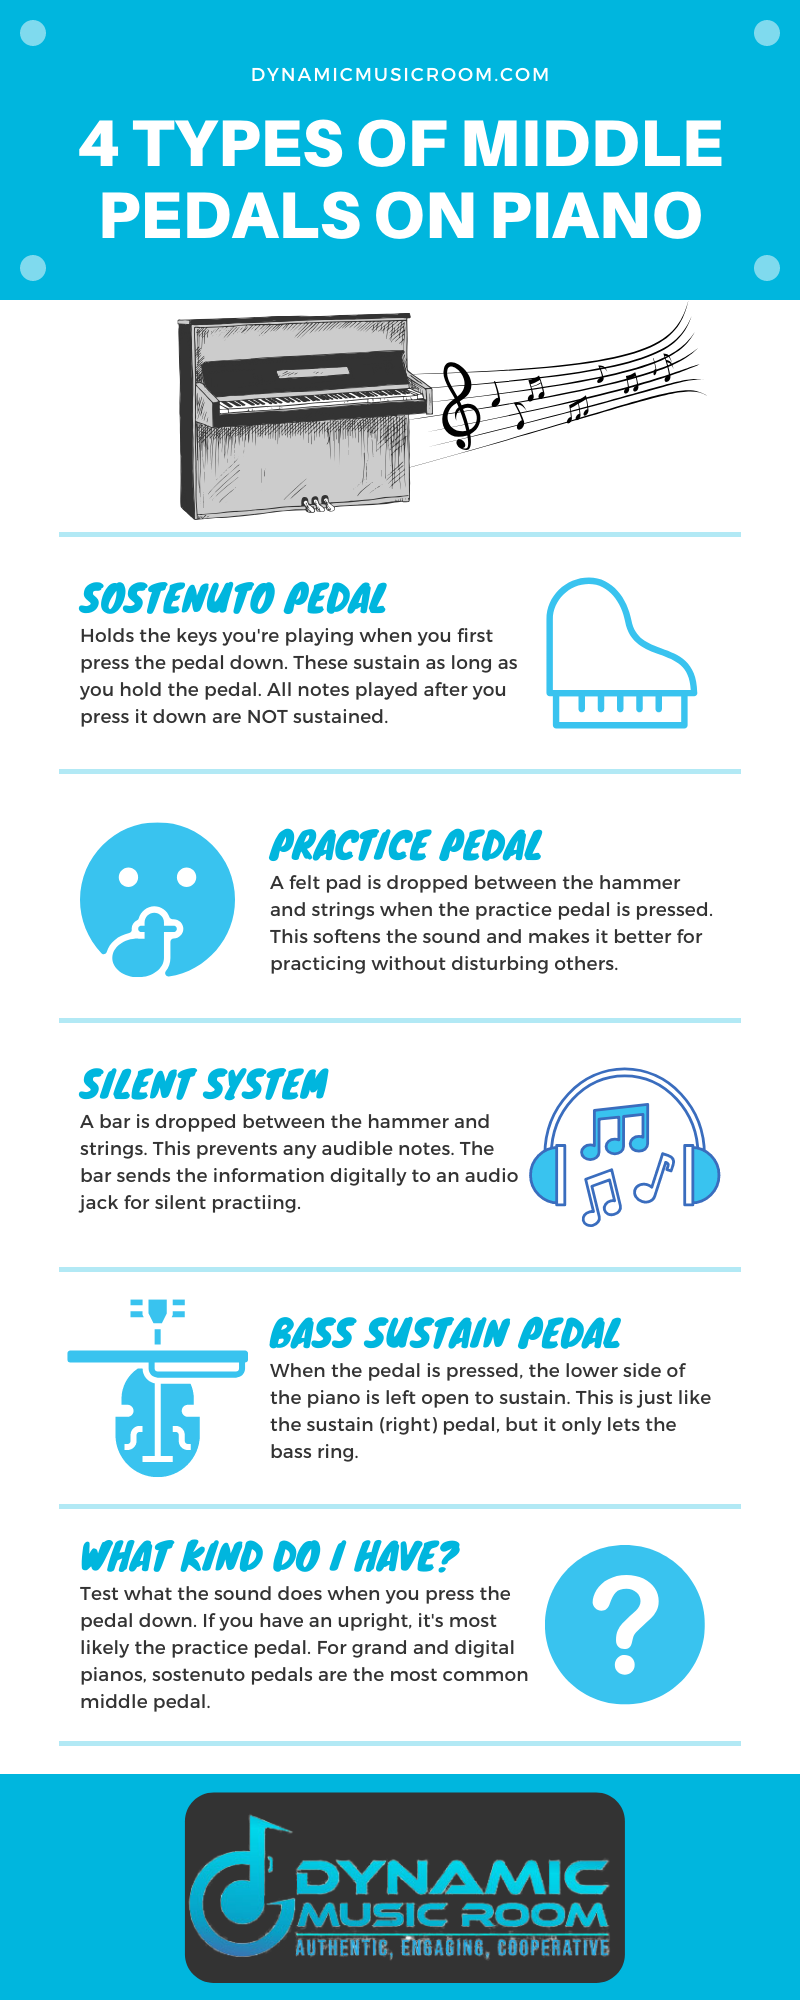 image 4 types of middle pedals on piano infographic